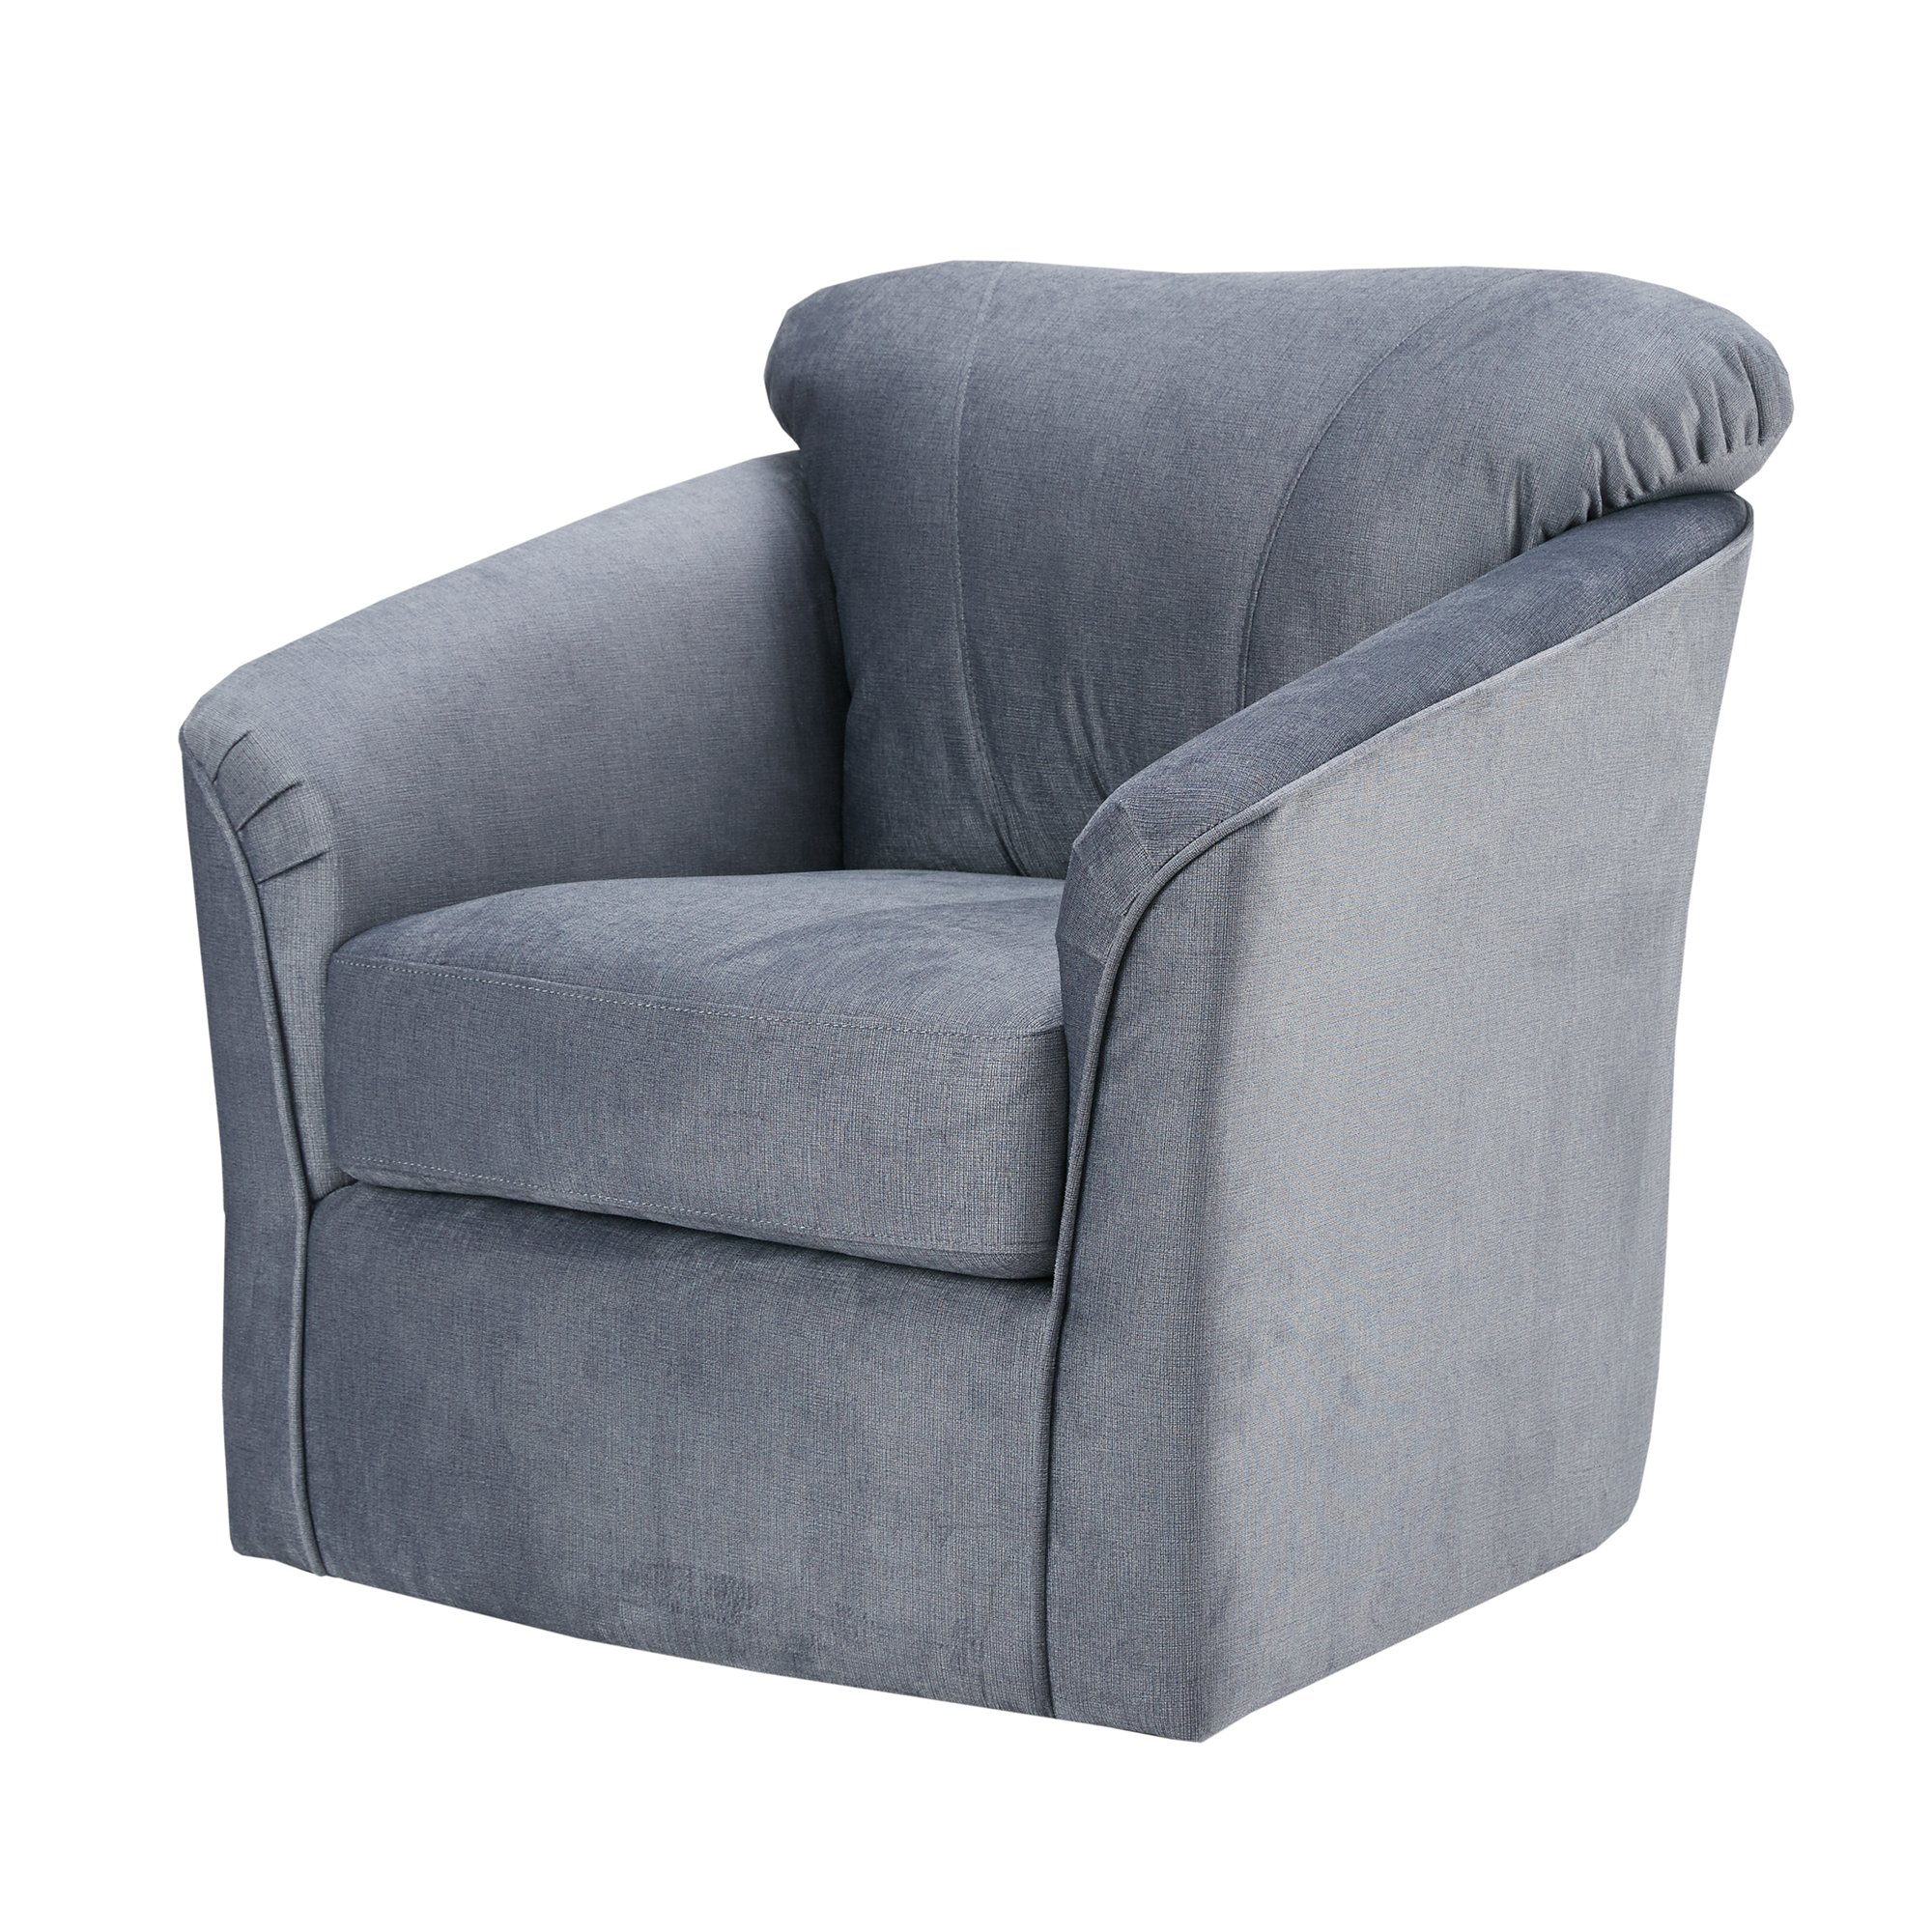 Shop Madison Park Elgin Grey Swivel Chair – Free Shipping Today Throughout Grey Swivel Chairs (View 14 of 20)